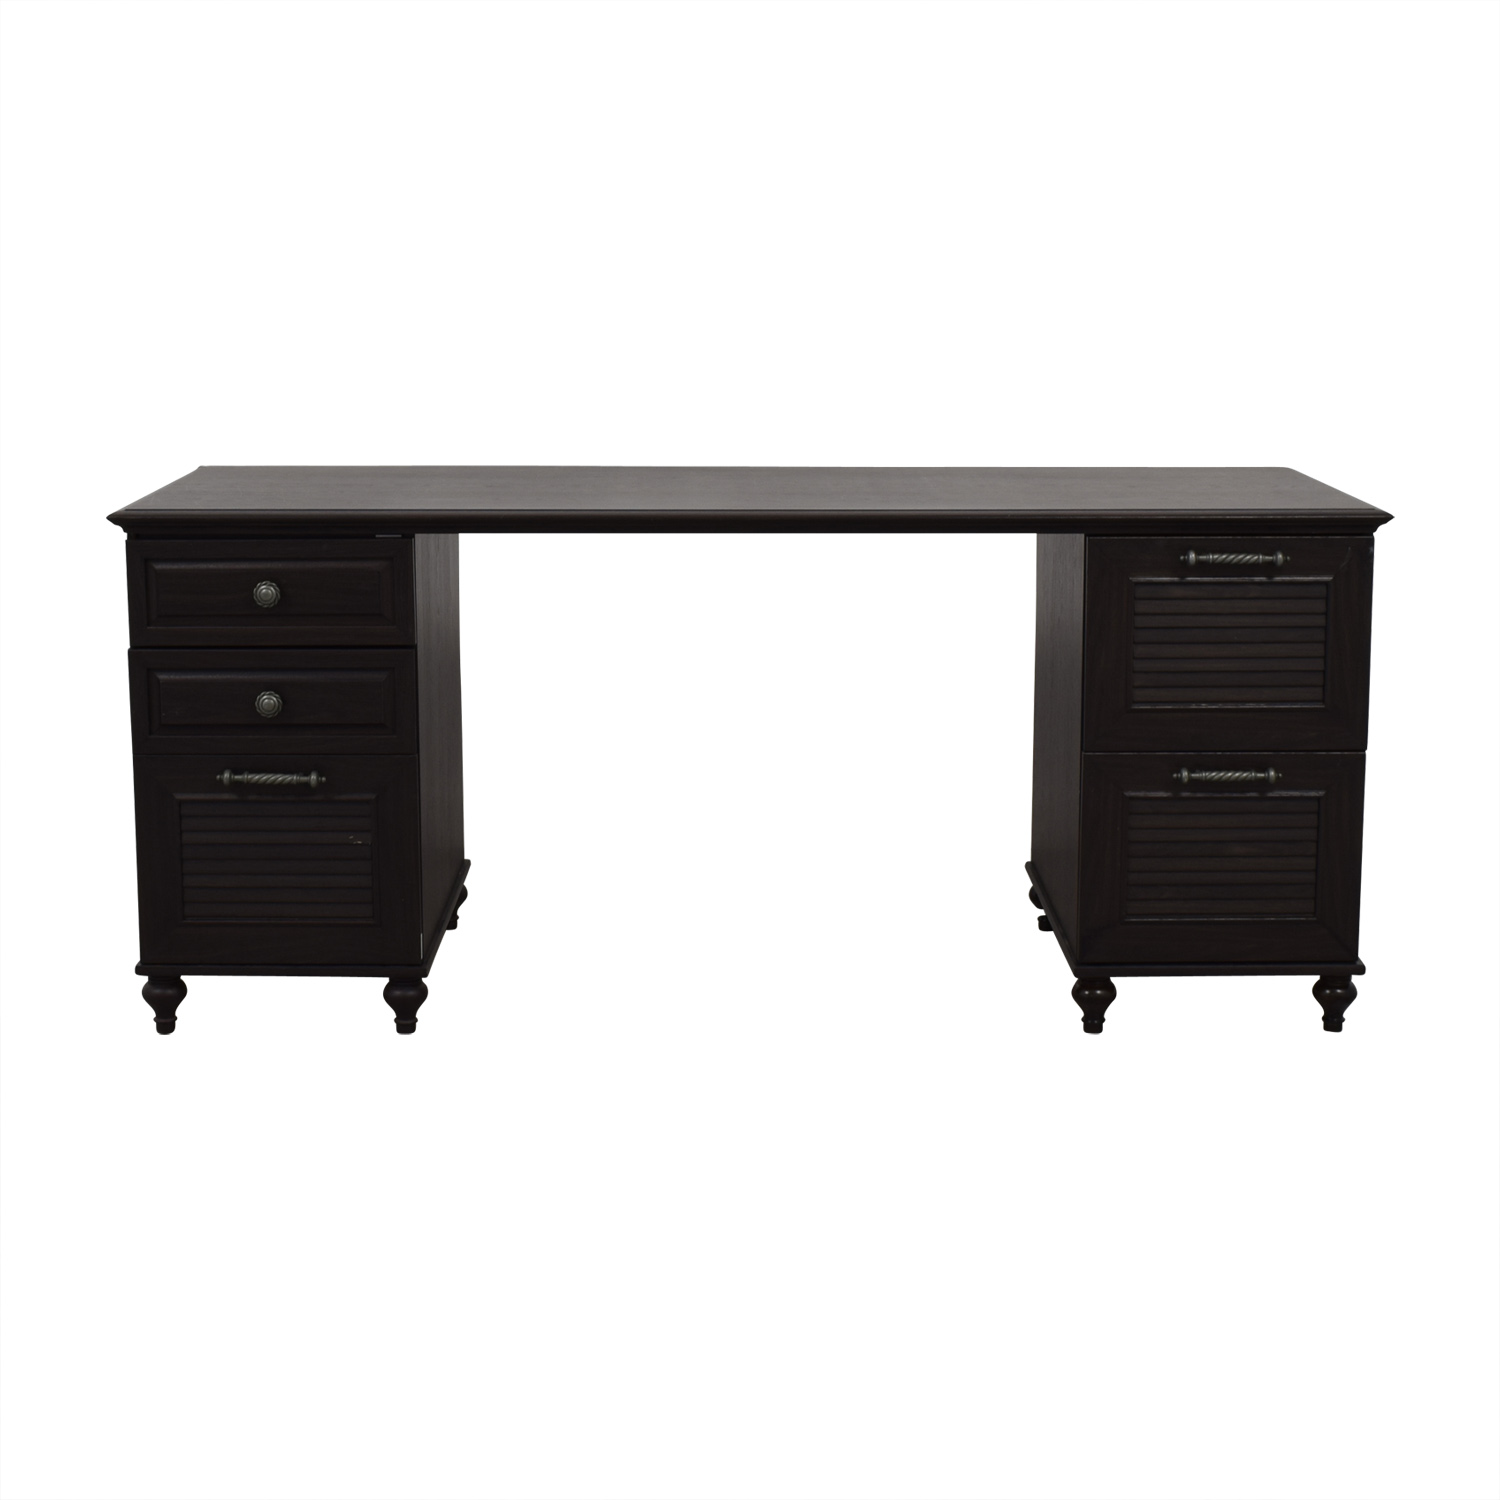 Cathy Ireland Cathy Ireland Black Desk With File Cabinets For